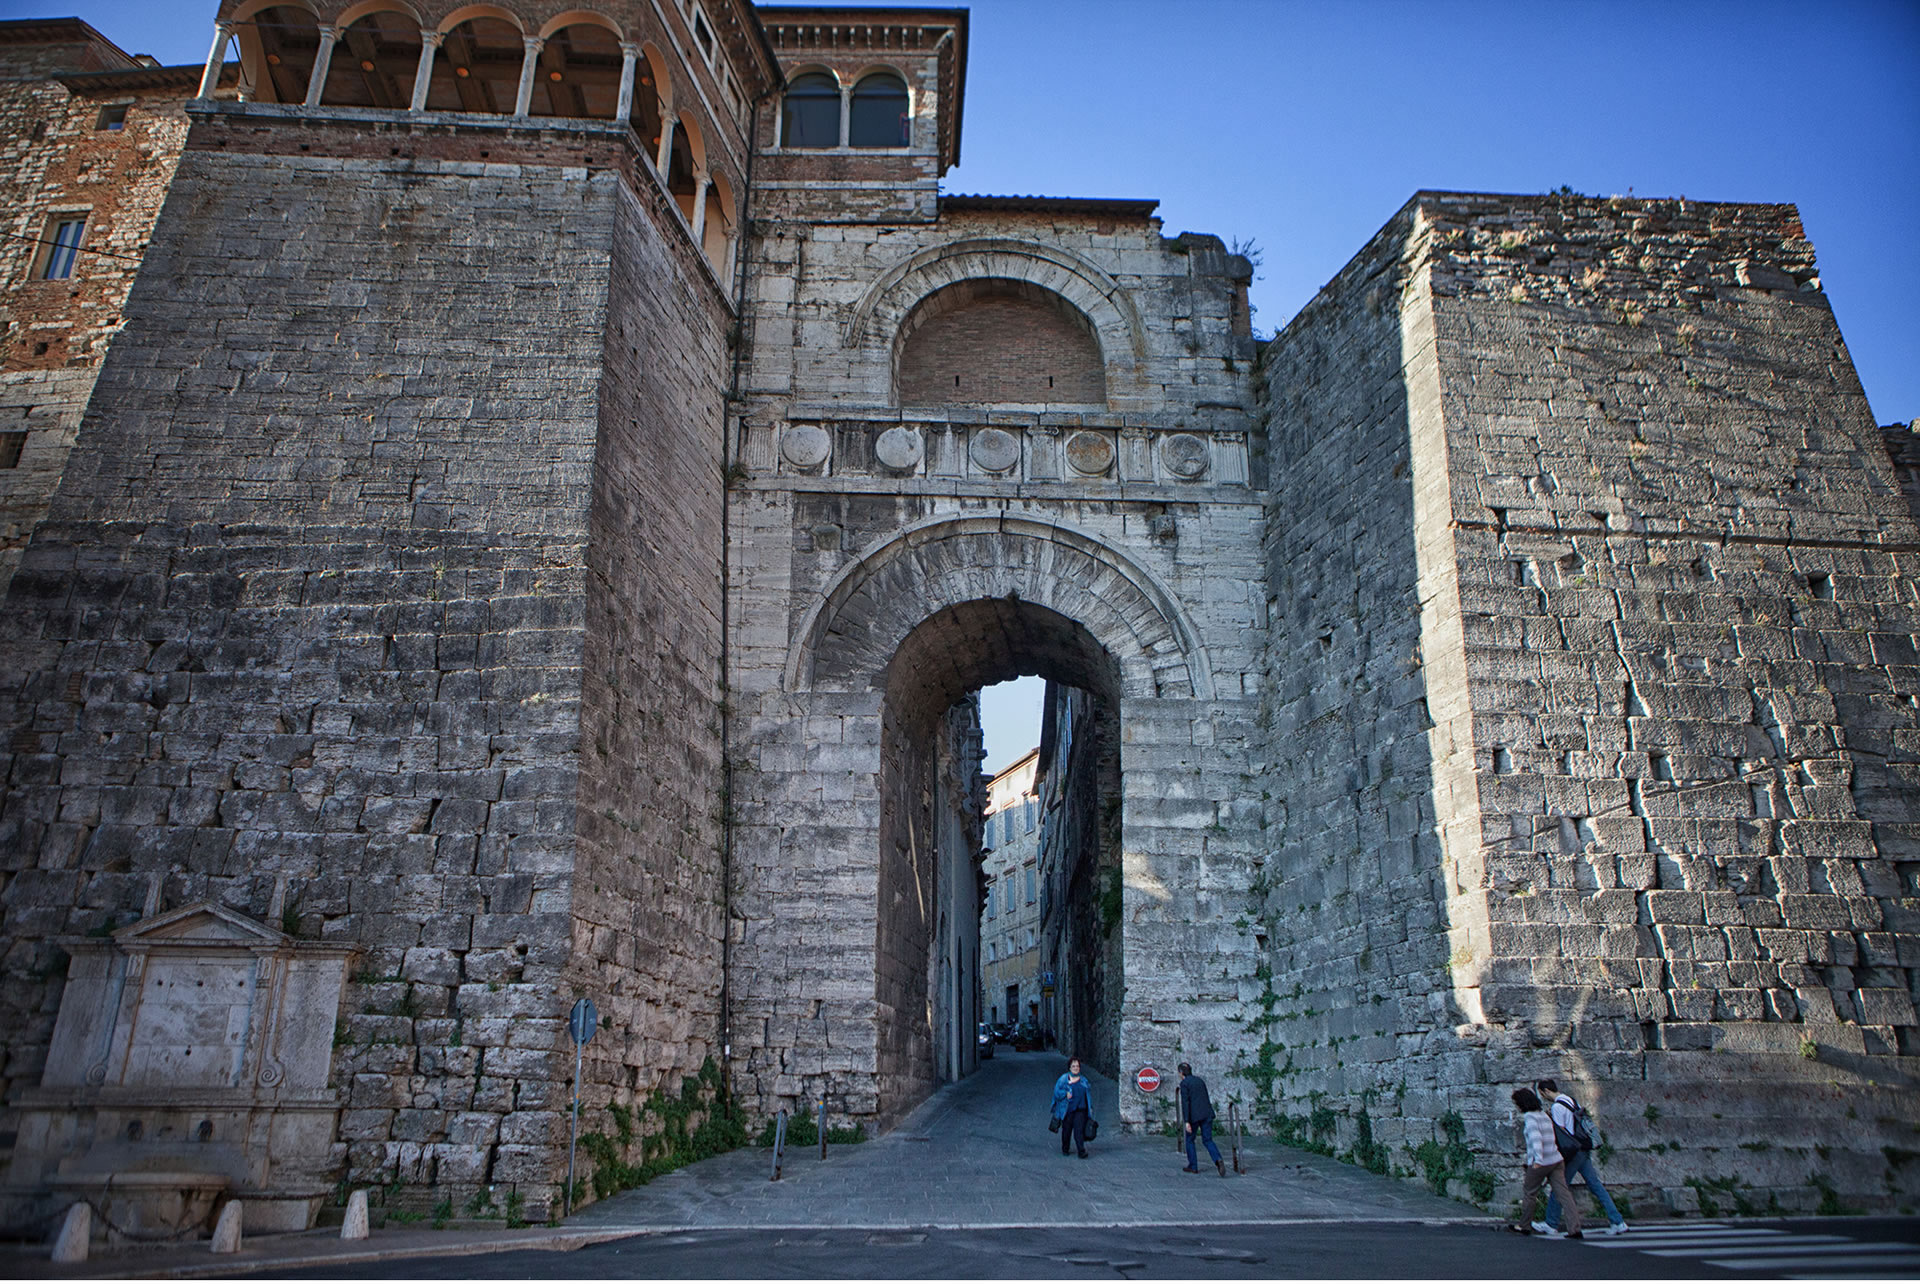 Etruscan arch of Perugia